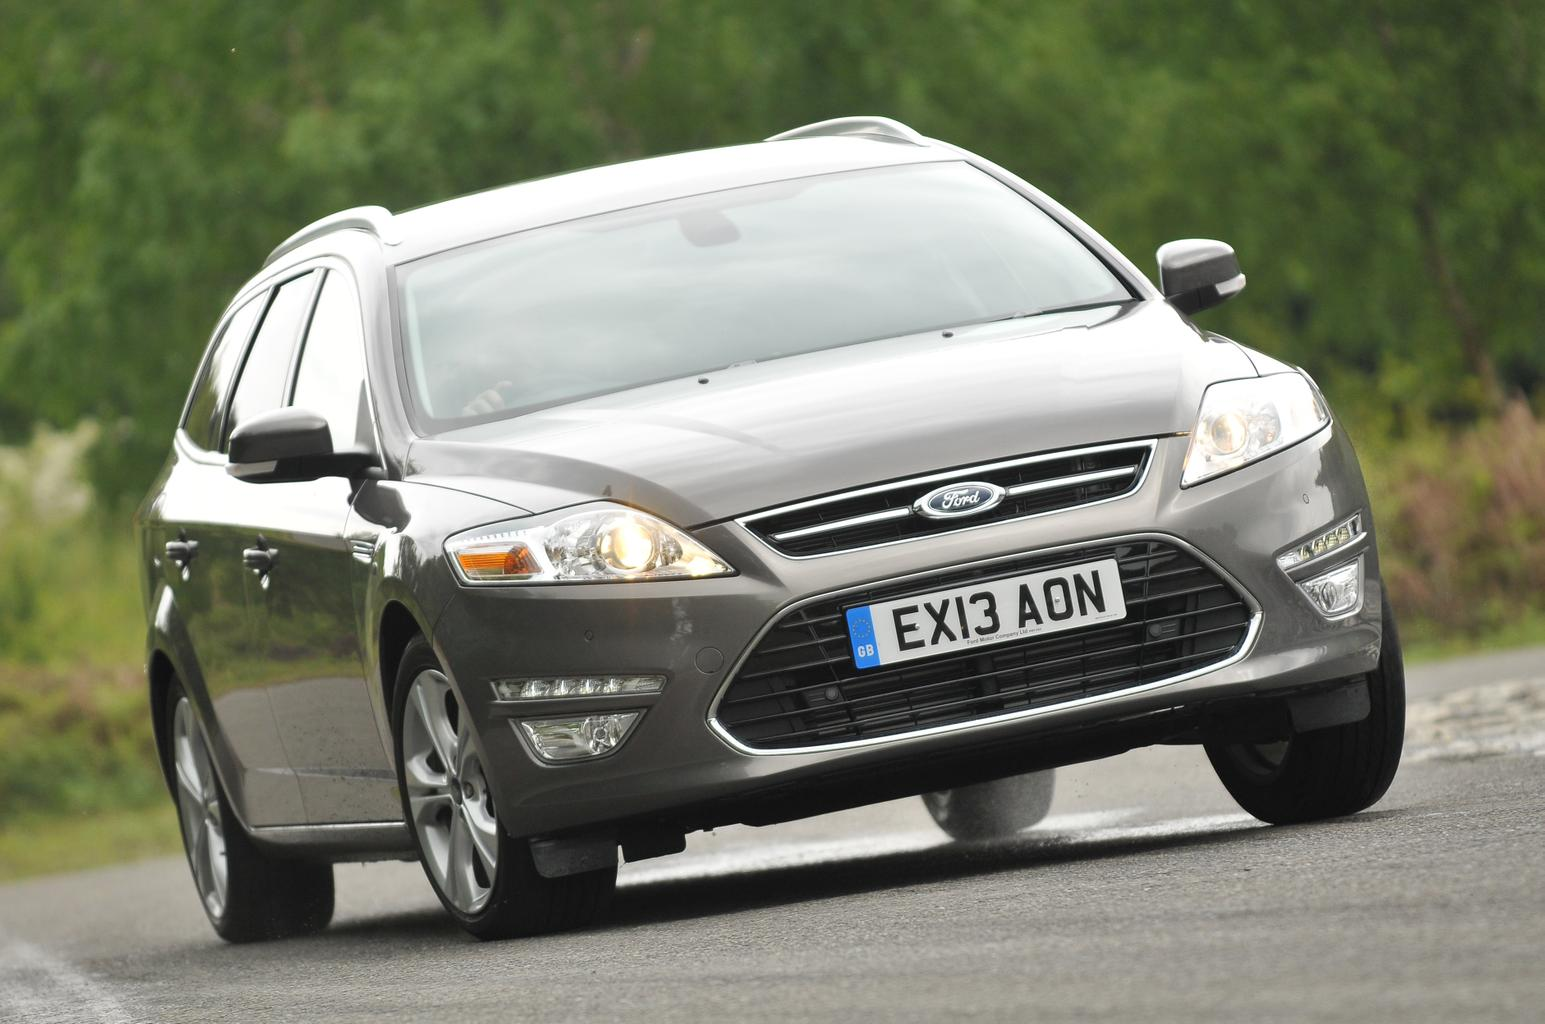 Best used estate cars for less than £5000